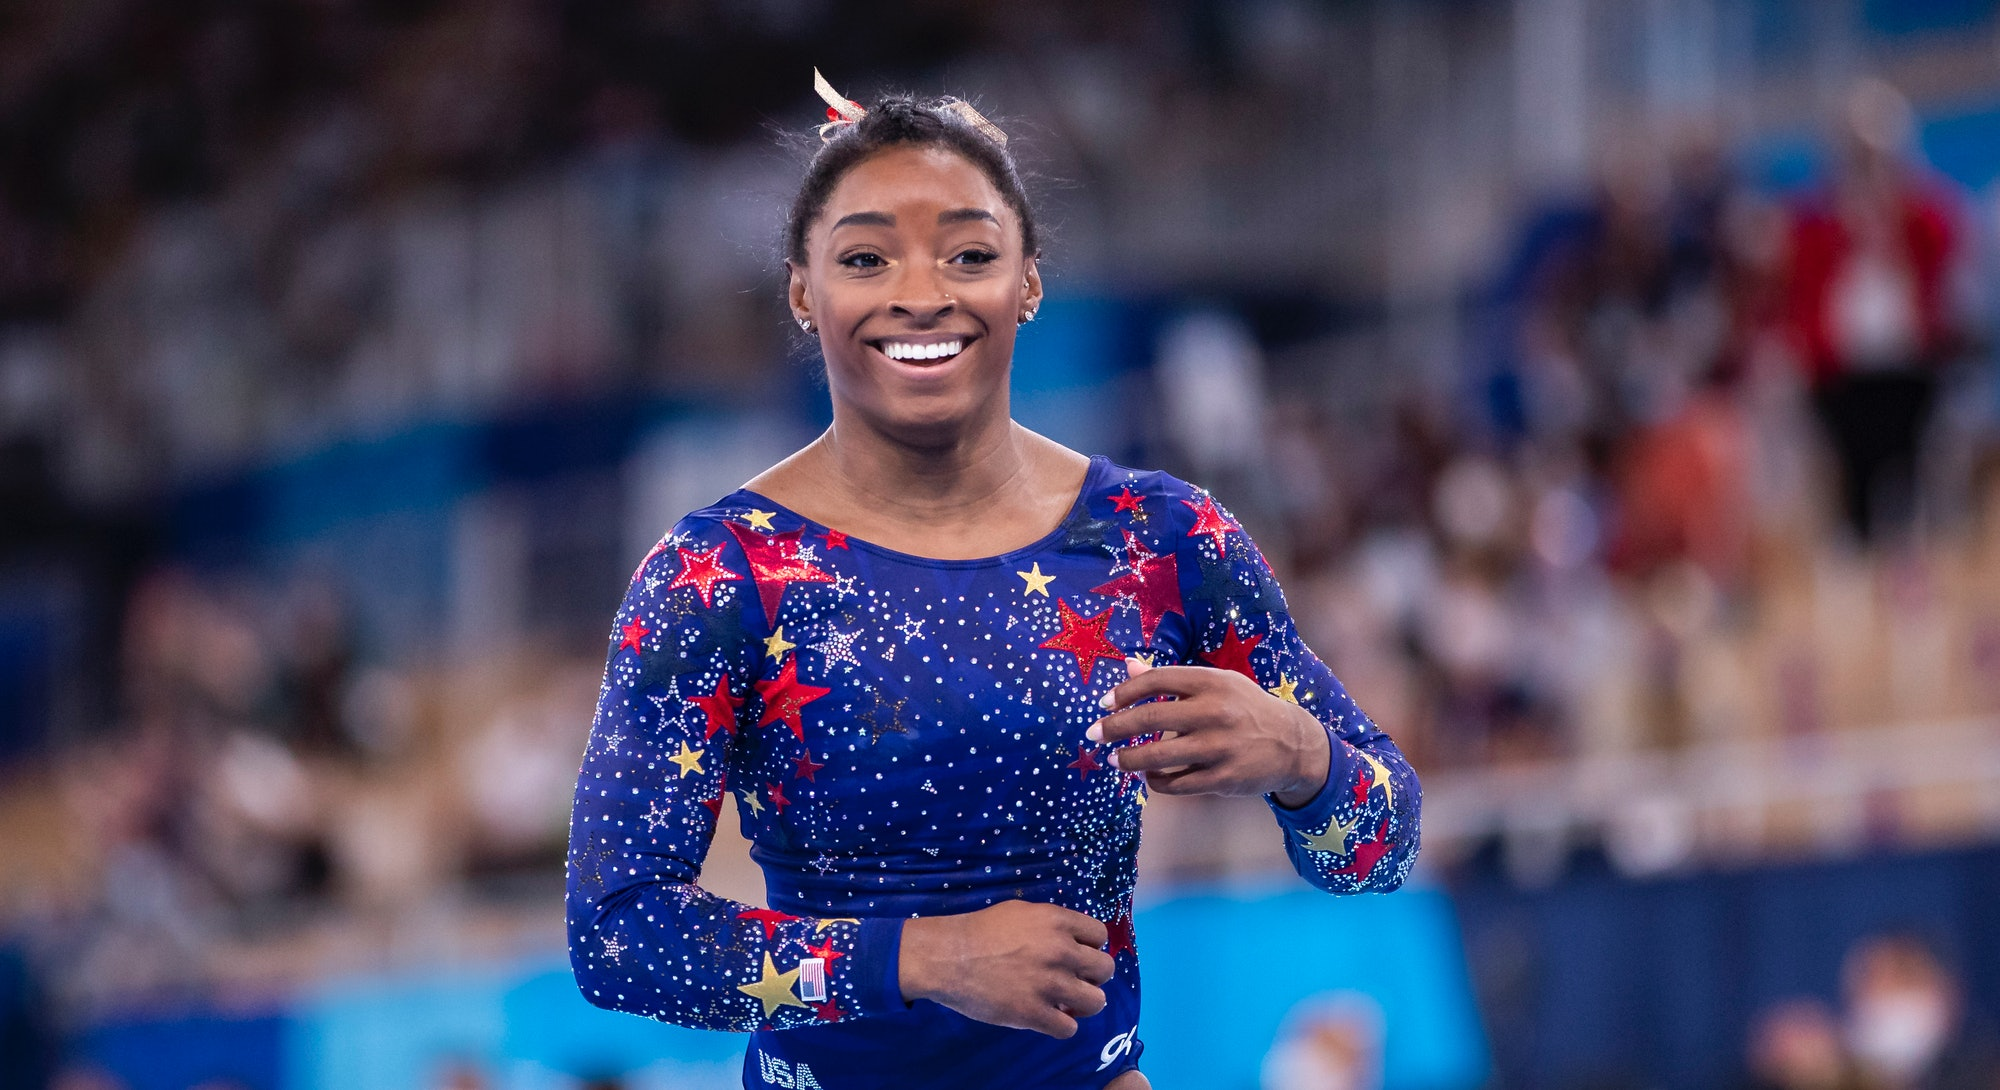 All 8 of the Team USA Olympics Gymnastics uniforms in 2021 were made by GK Elite. Find the meaning b...